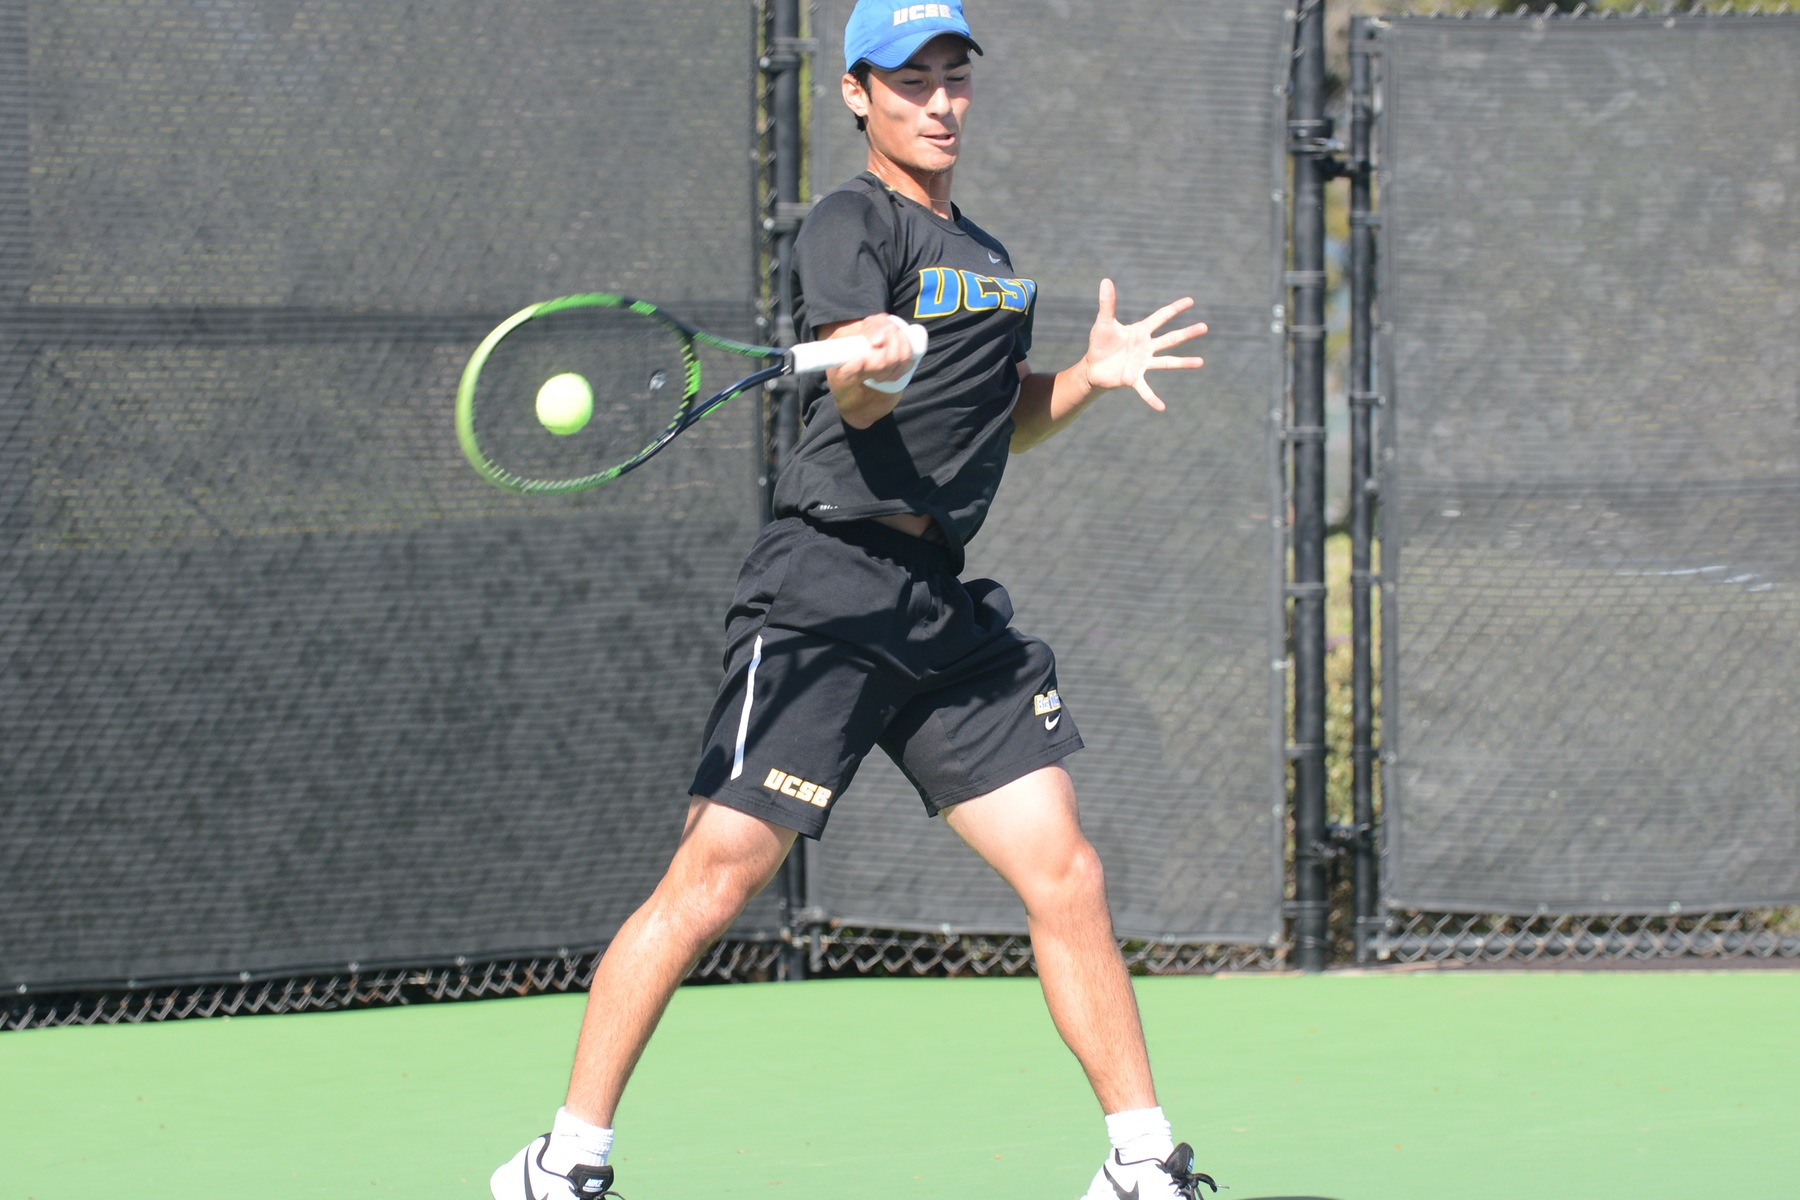 Simon Freund clinched the victory for Santa Barbara on Friday taking the final singles match with a final score of 6-0, 6-1.